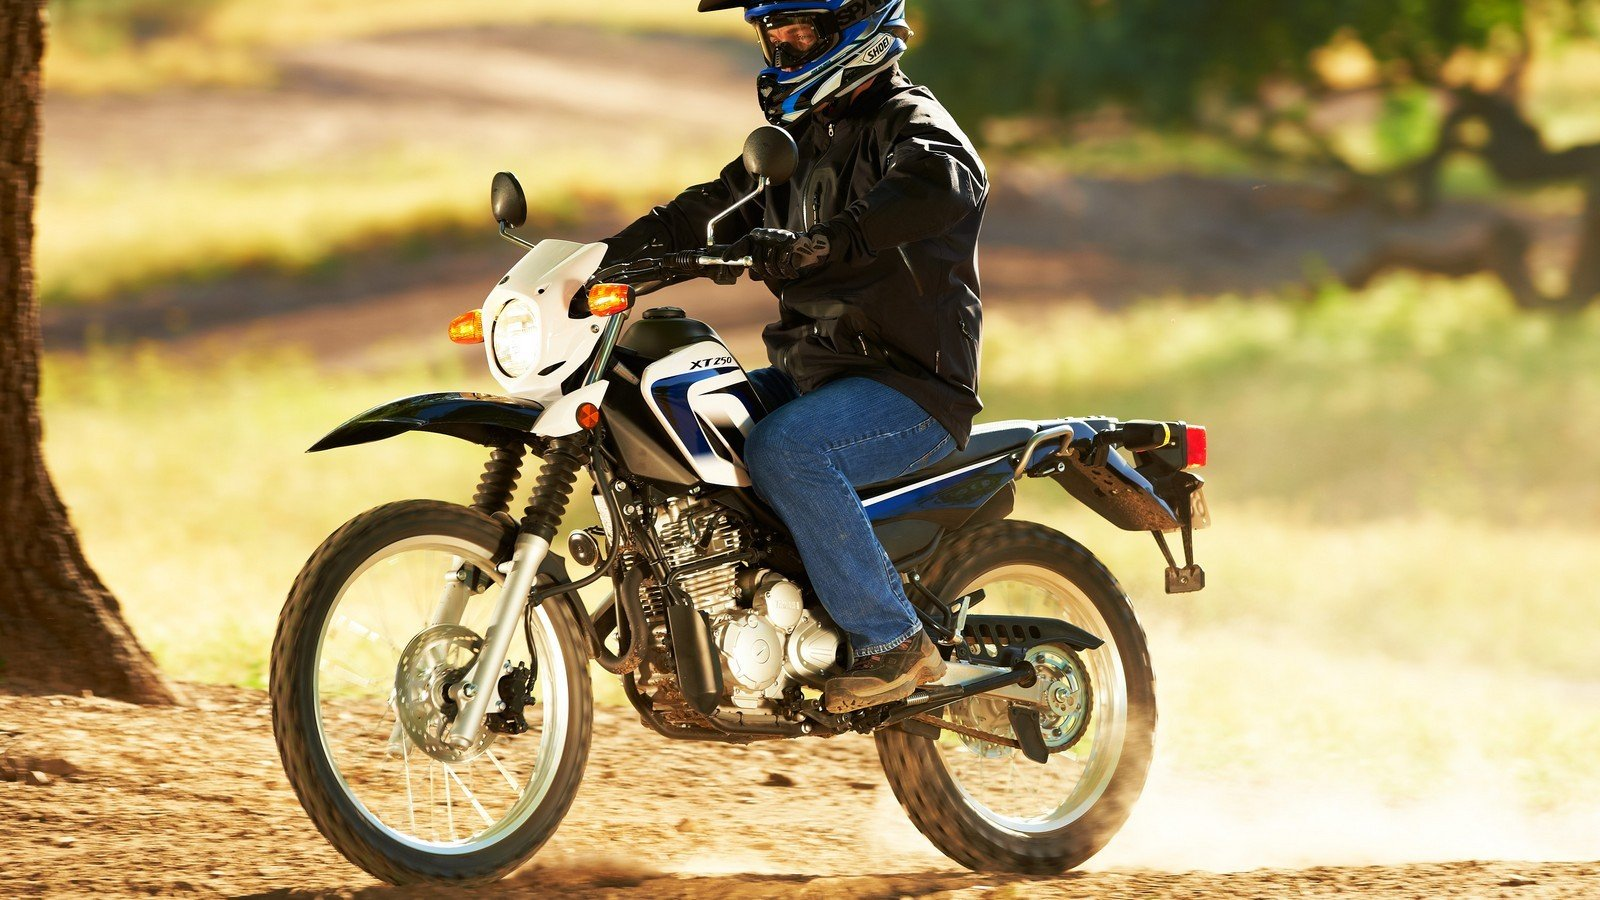 2013 yamaha xt250 picture 464422 motorcycle review for Yamaha xt250 top speed